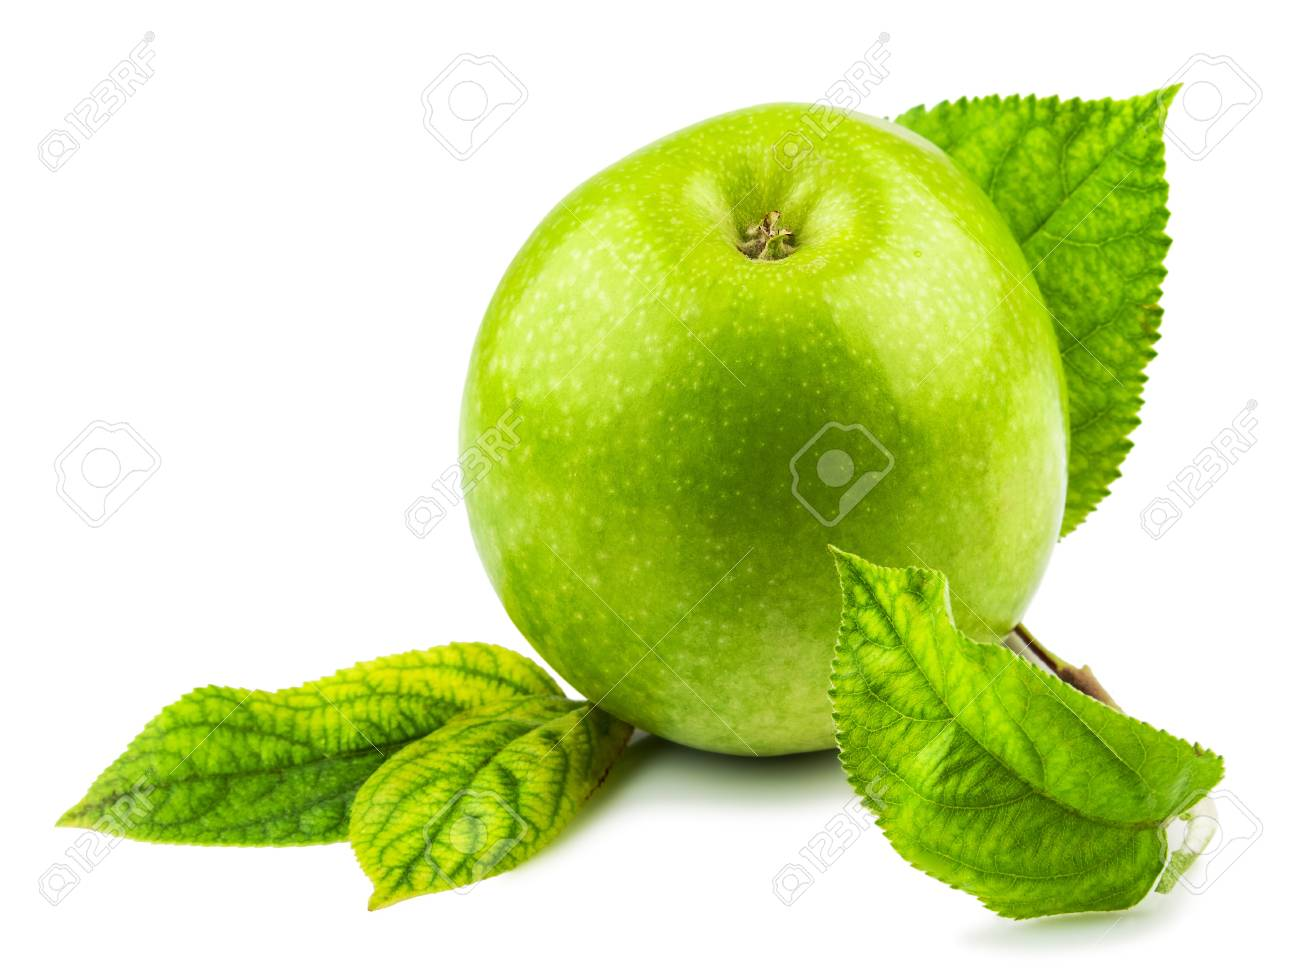 Macro view of green apple with green leaves isolated on white background Stock Photo - 18384558